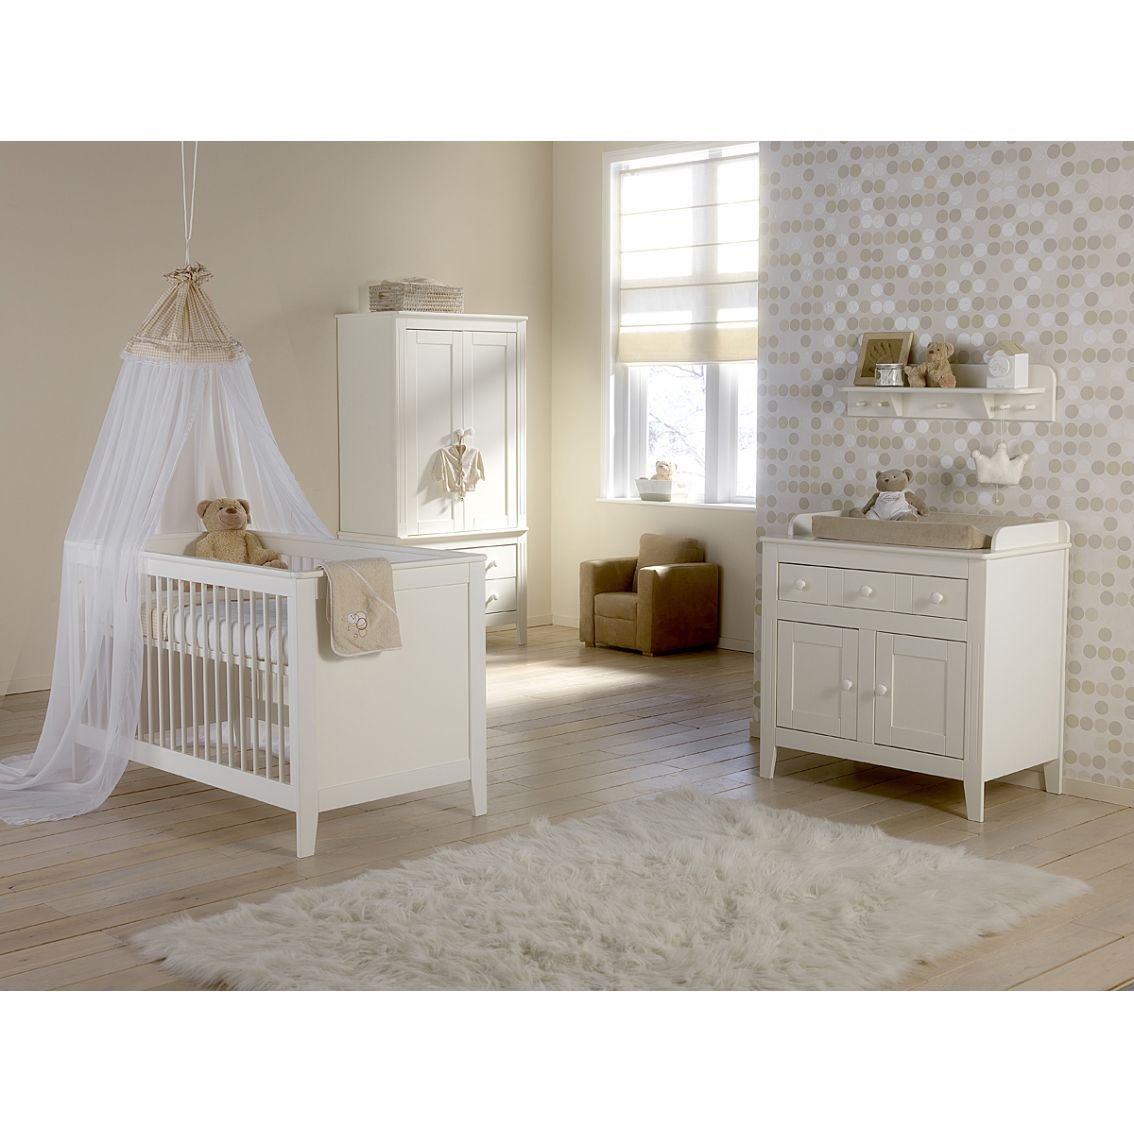 Best Nursery Collections with Restoration Hardware Cribs Design: Fancy Baby Cribs | Restoration Hardware Cribs | High End Cribs